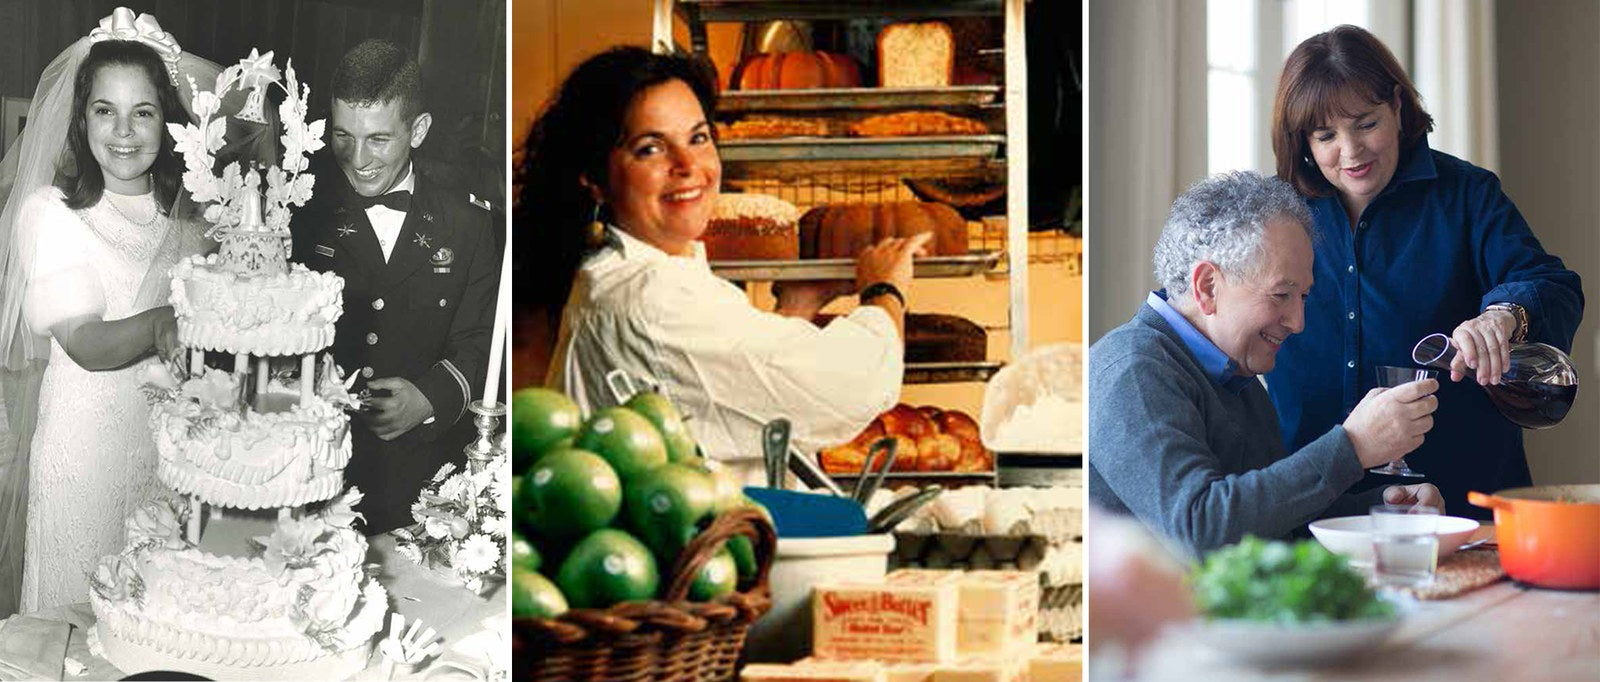 "how simple is that?"": at home with ina garten"